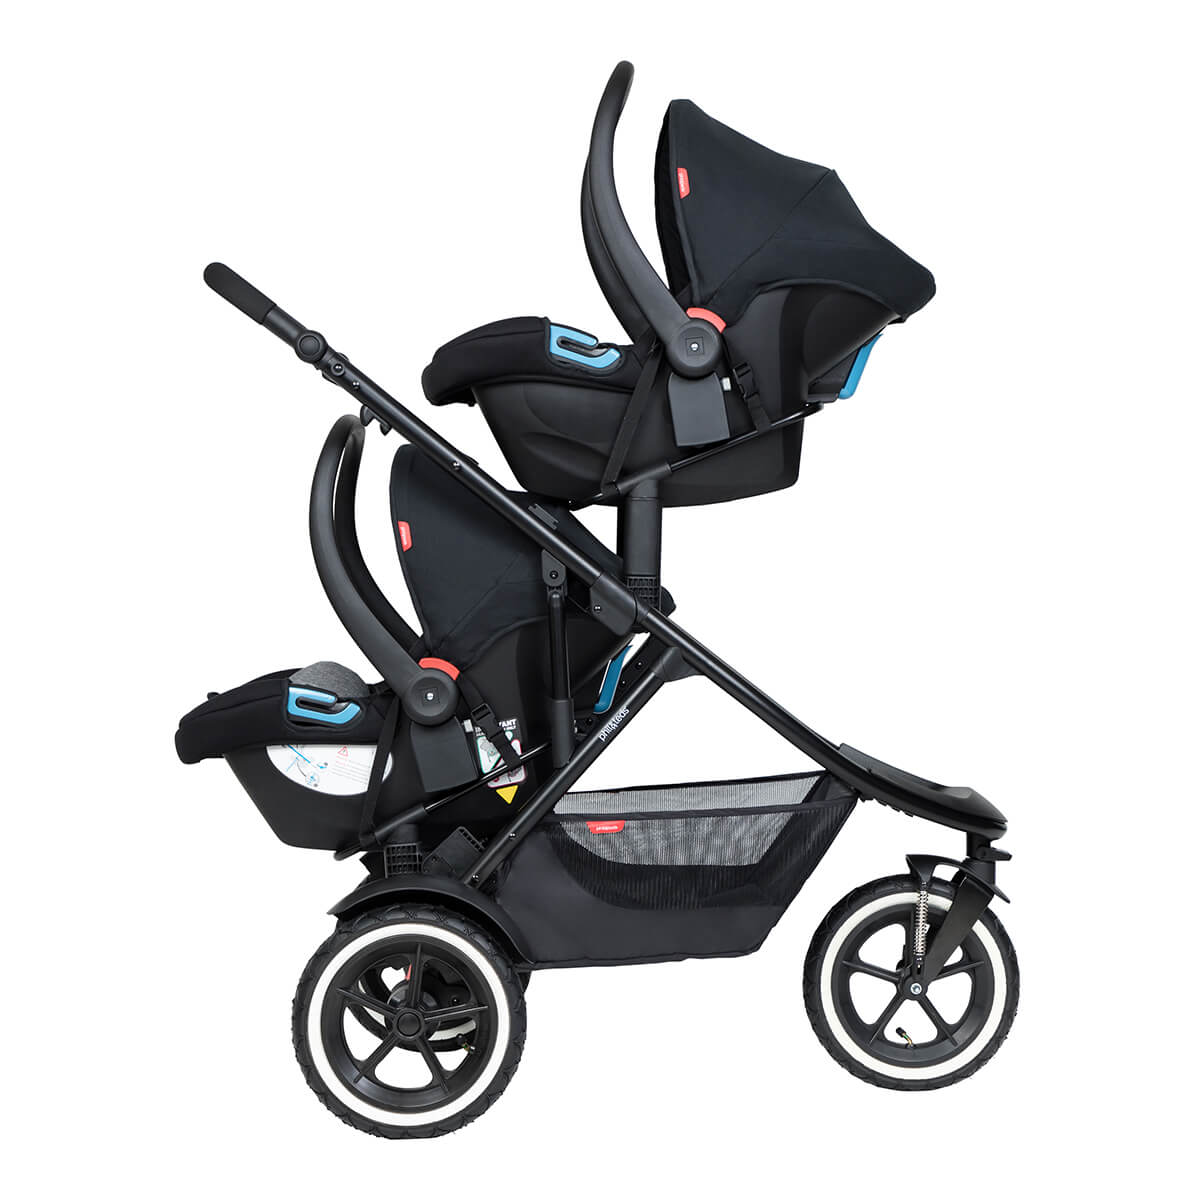 https://cdn.accentuate.io/4509526851672/19272668414040/philteds-sport-buggy-with-double-alpha-travel-system-v1626484309763.jpg?1200x1200